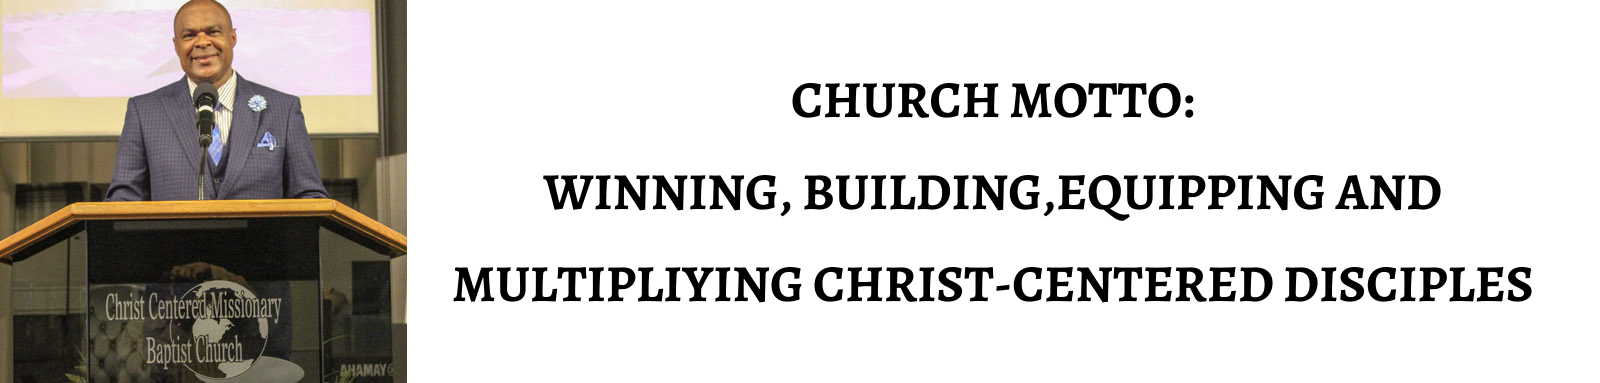 CHURCH_MOTTO_WINNING_BUILDINGEQUIPPING_AND_MULTIPLIYING_CHRIST-CENTERED_DISCIPLES